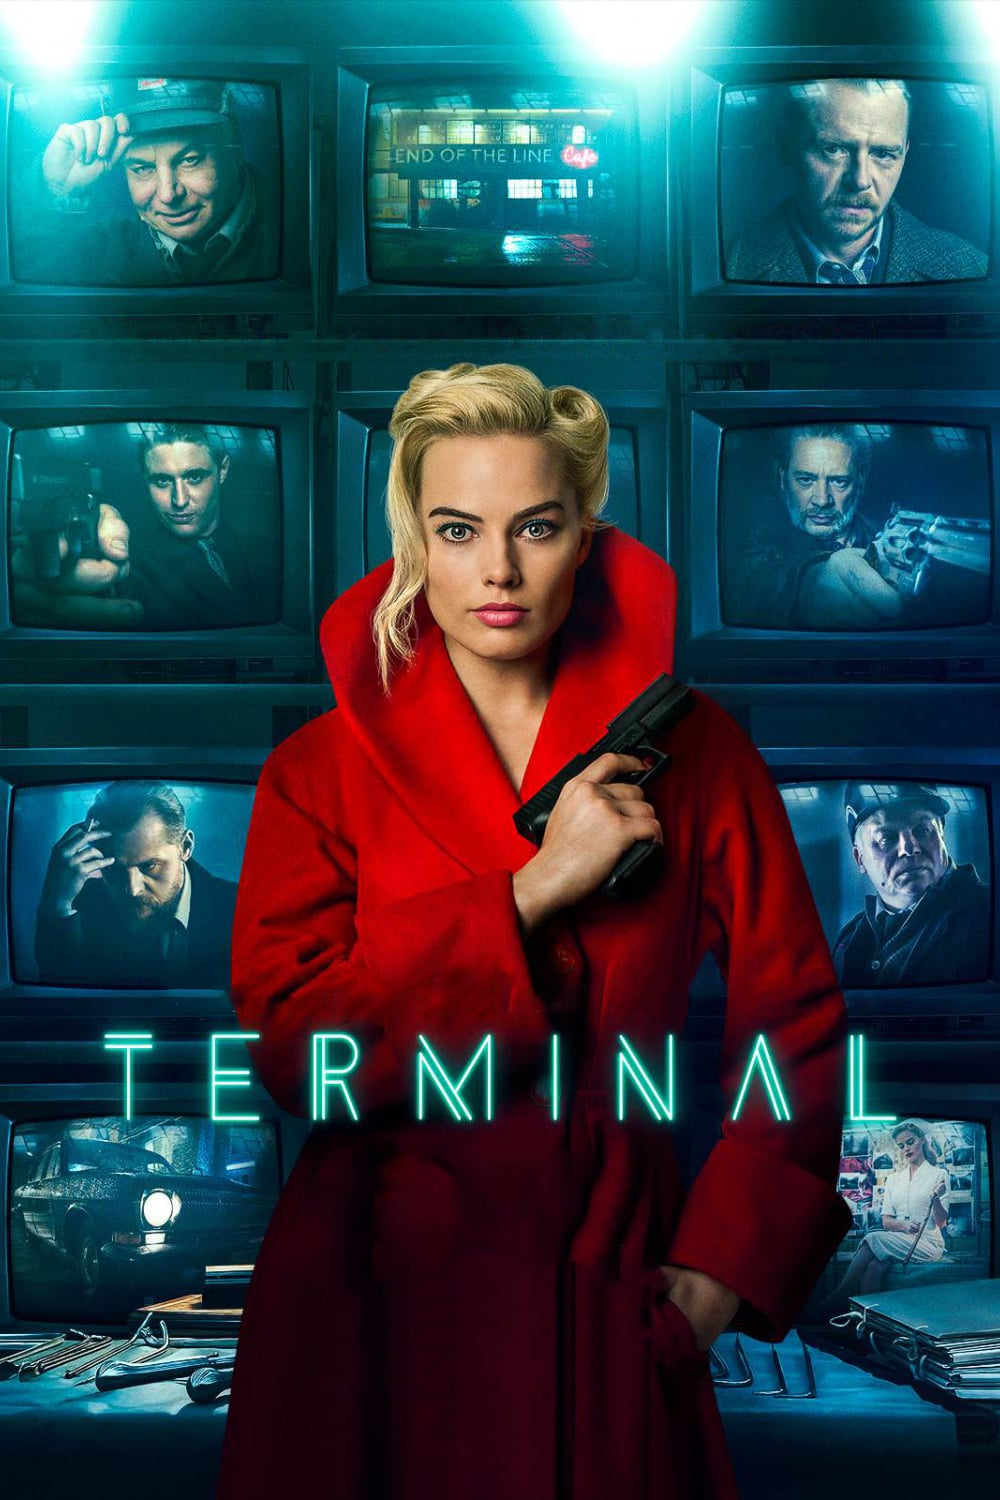 Terminal [2018] [DVDR] [NTSC] [CUSTOM HD] [Latino]